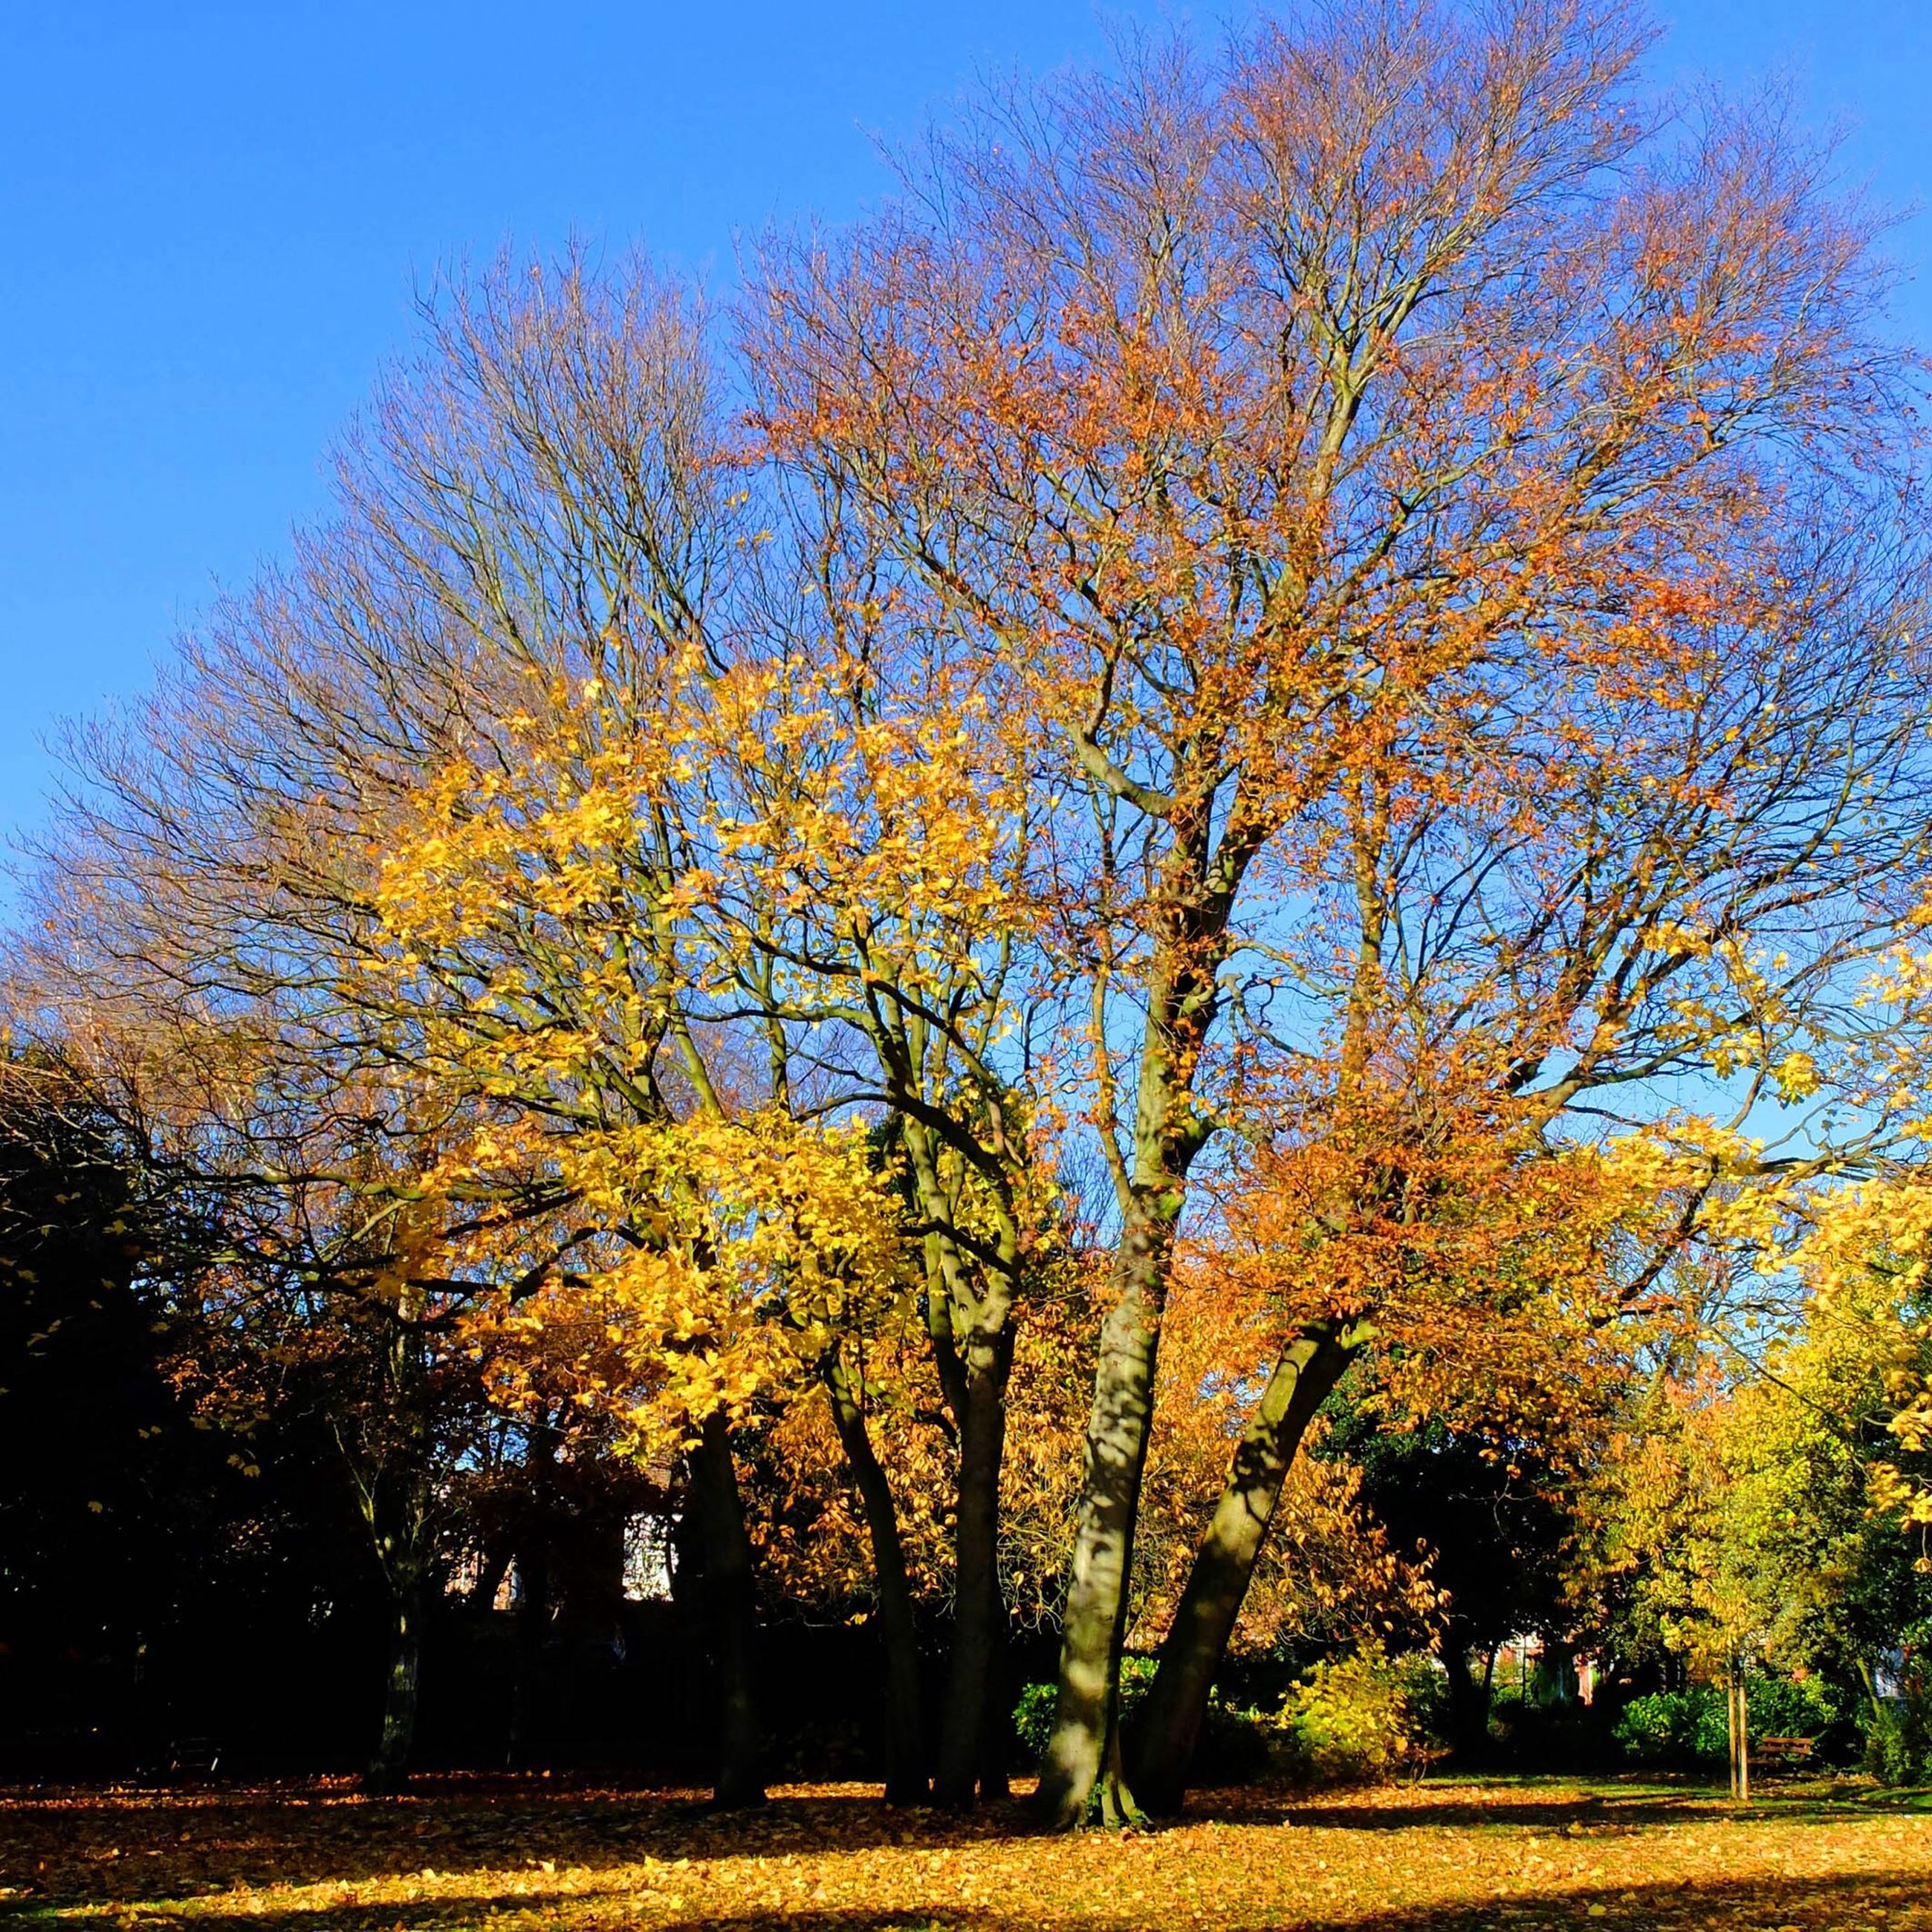 tree, autumn, growth, yellow, tranquility, beauty in nature, change, nature, clear sky, field, branch, tranquil scene, blue, season, scenics, sky, landscape, sunlight, park - man made space, outdoors